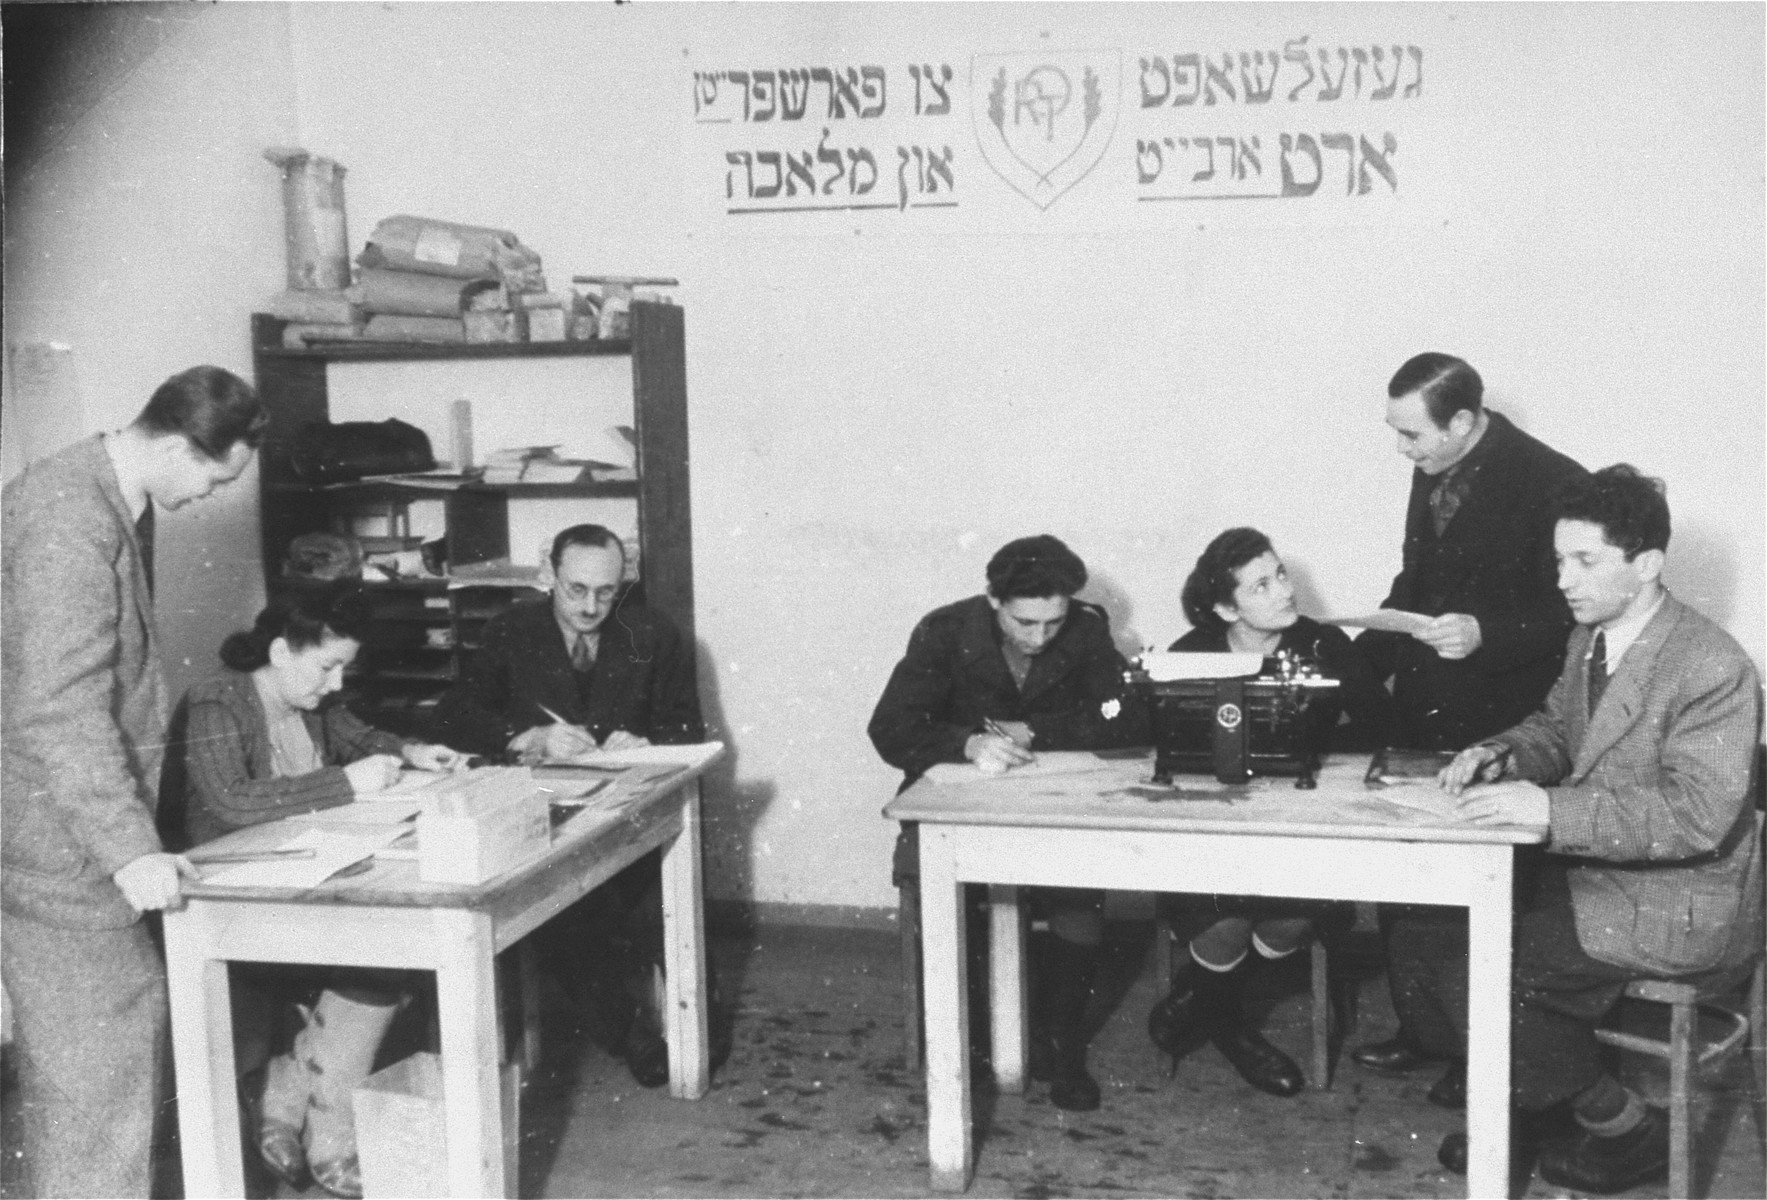 ORT office in the camp. The man pictured on the right speaking to the secretary is Jana Wisgardisky.